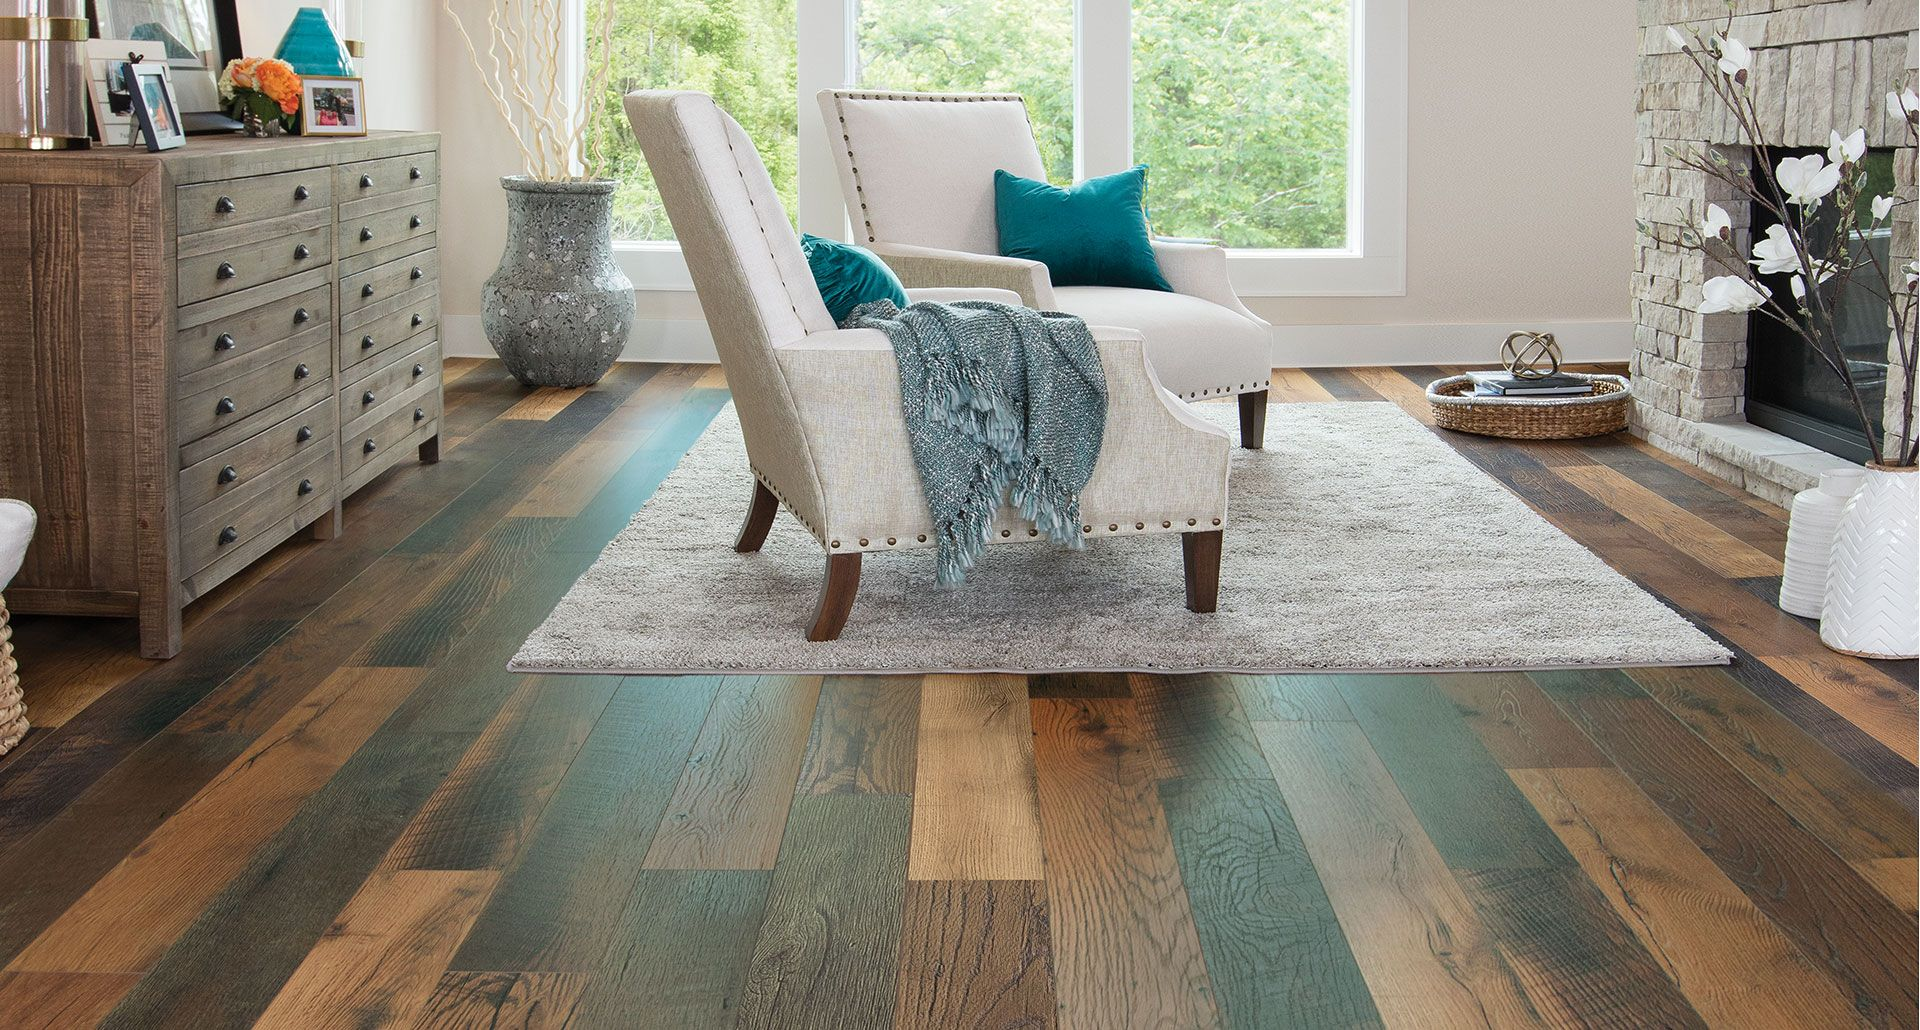 Innovative Pergo Timbercraft Laminate Flooring With A Series Of